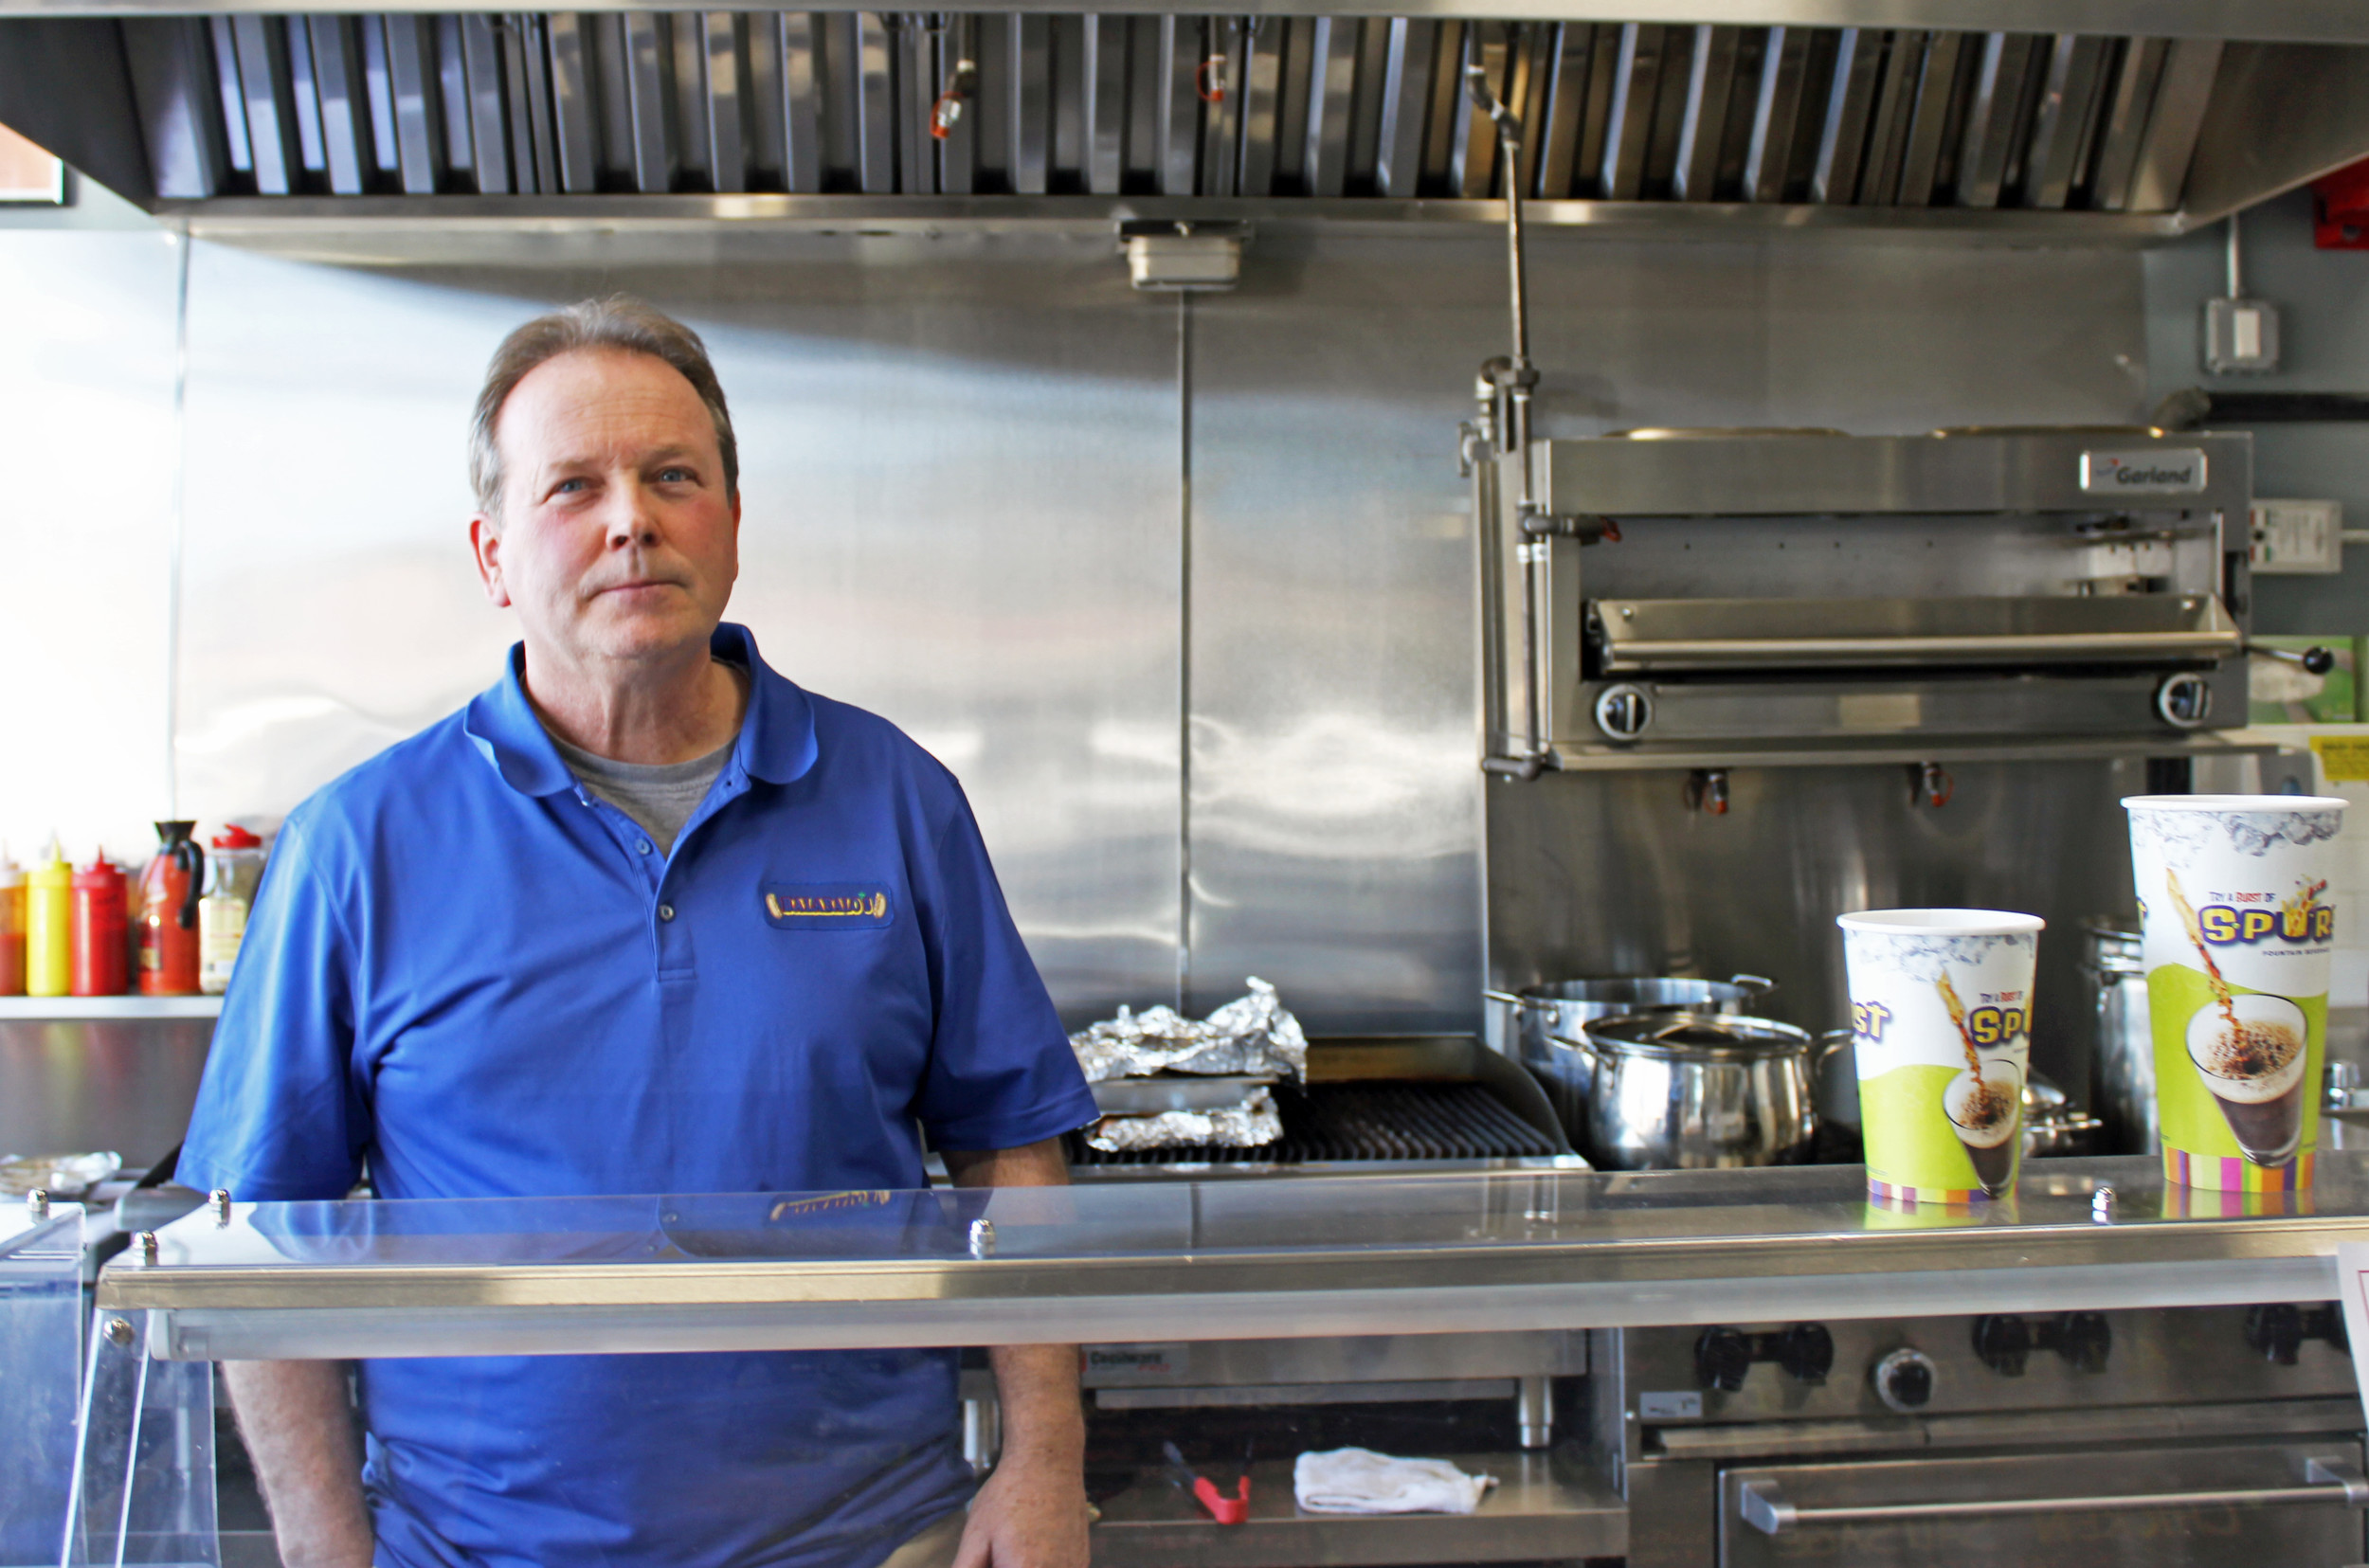 Jim Hamilton, 60, of Merrick wanted to open a restaurant akin to the traditional hot dog trucks he enjoyed growing up.